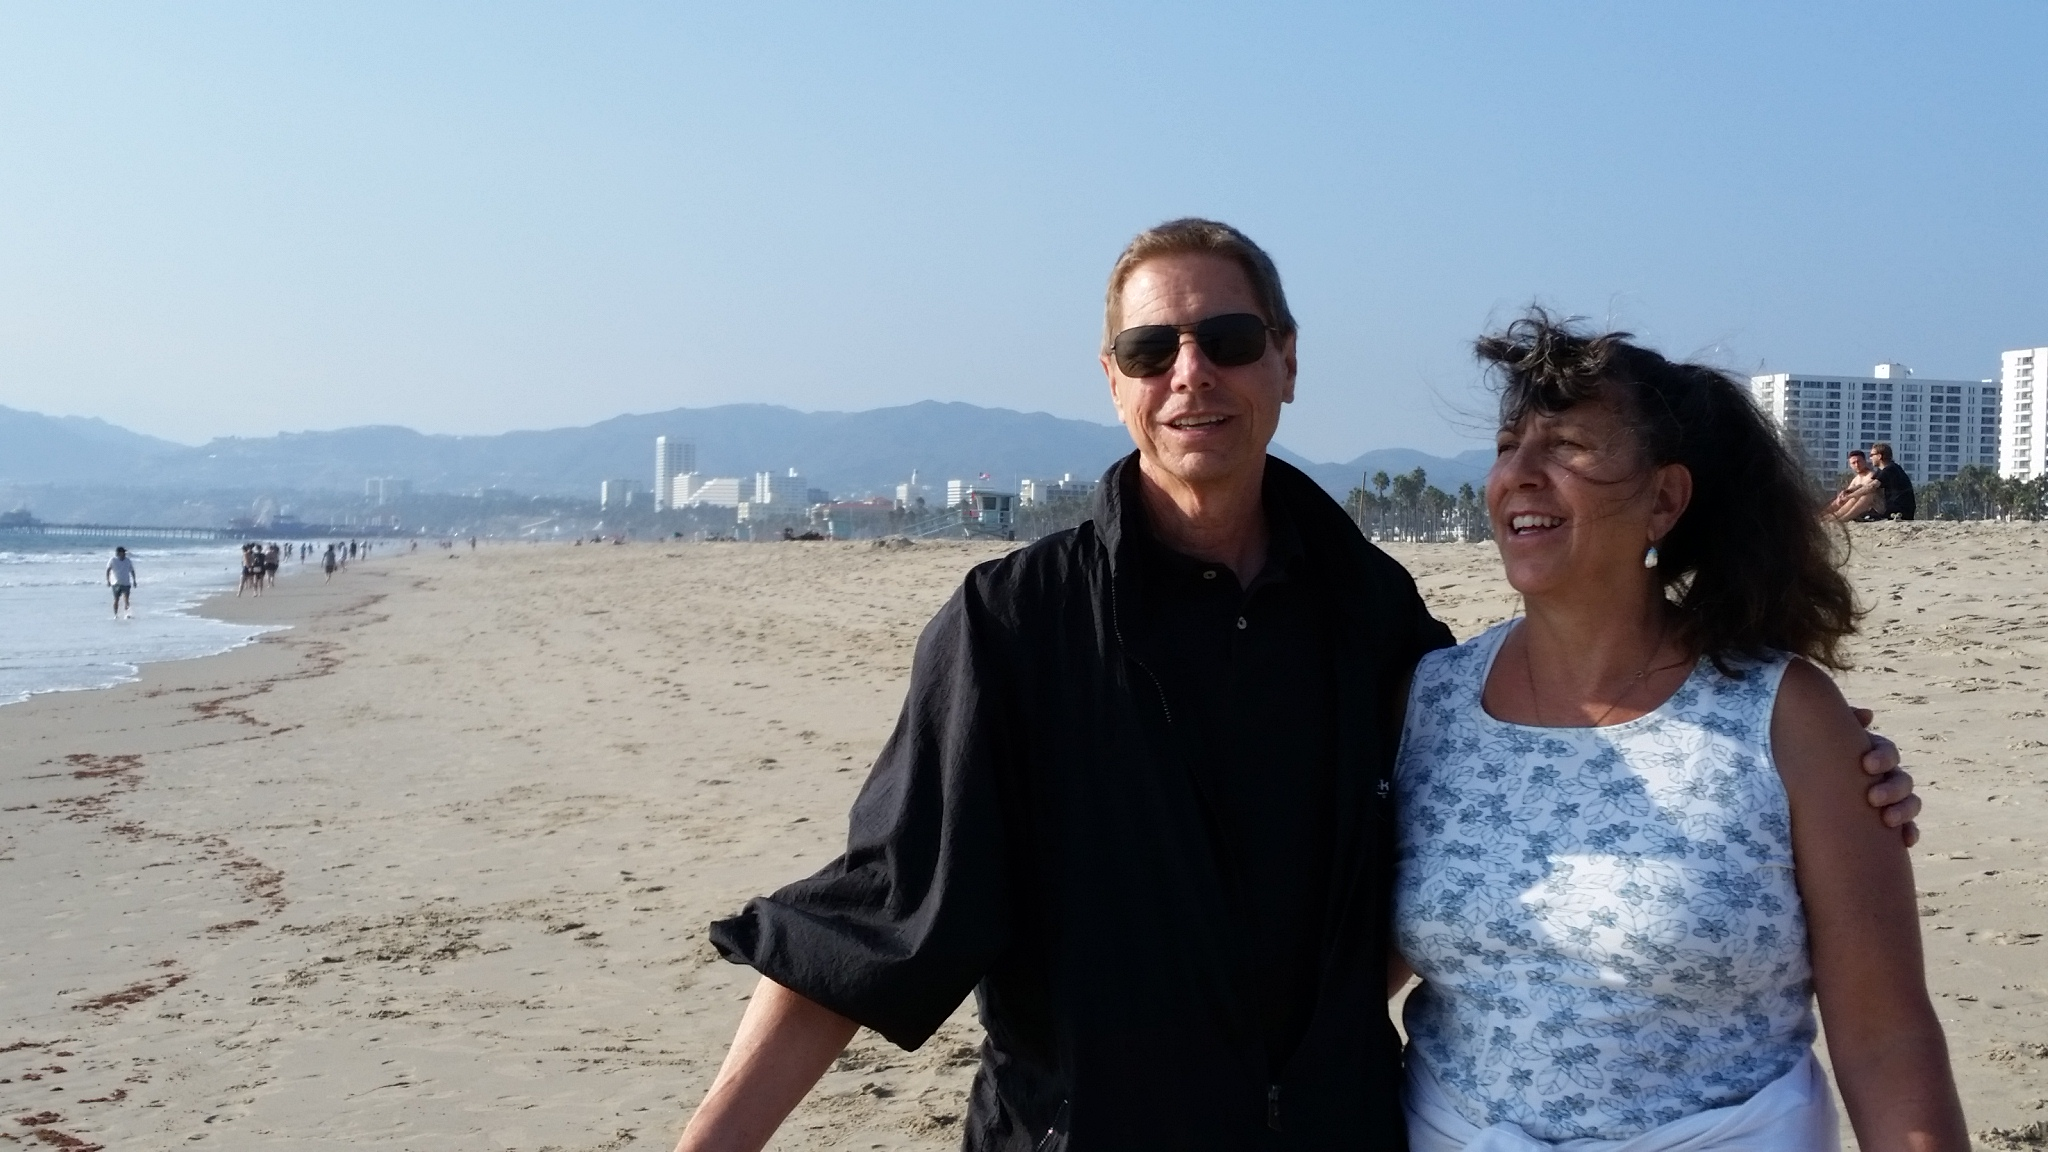 2017-09-19 Bob and Sherry Venice Beach CA